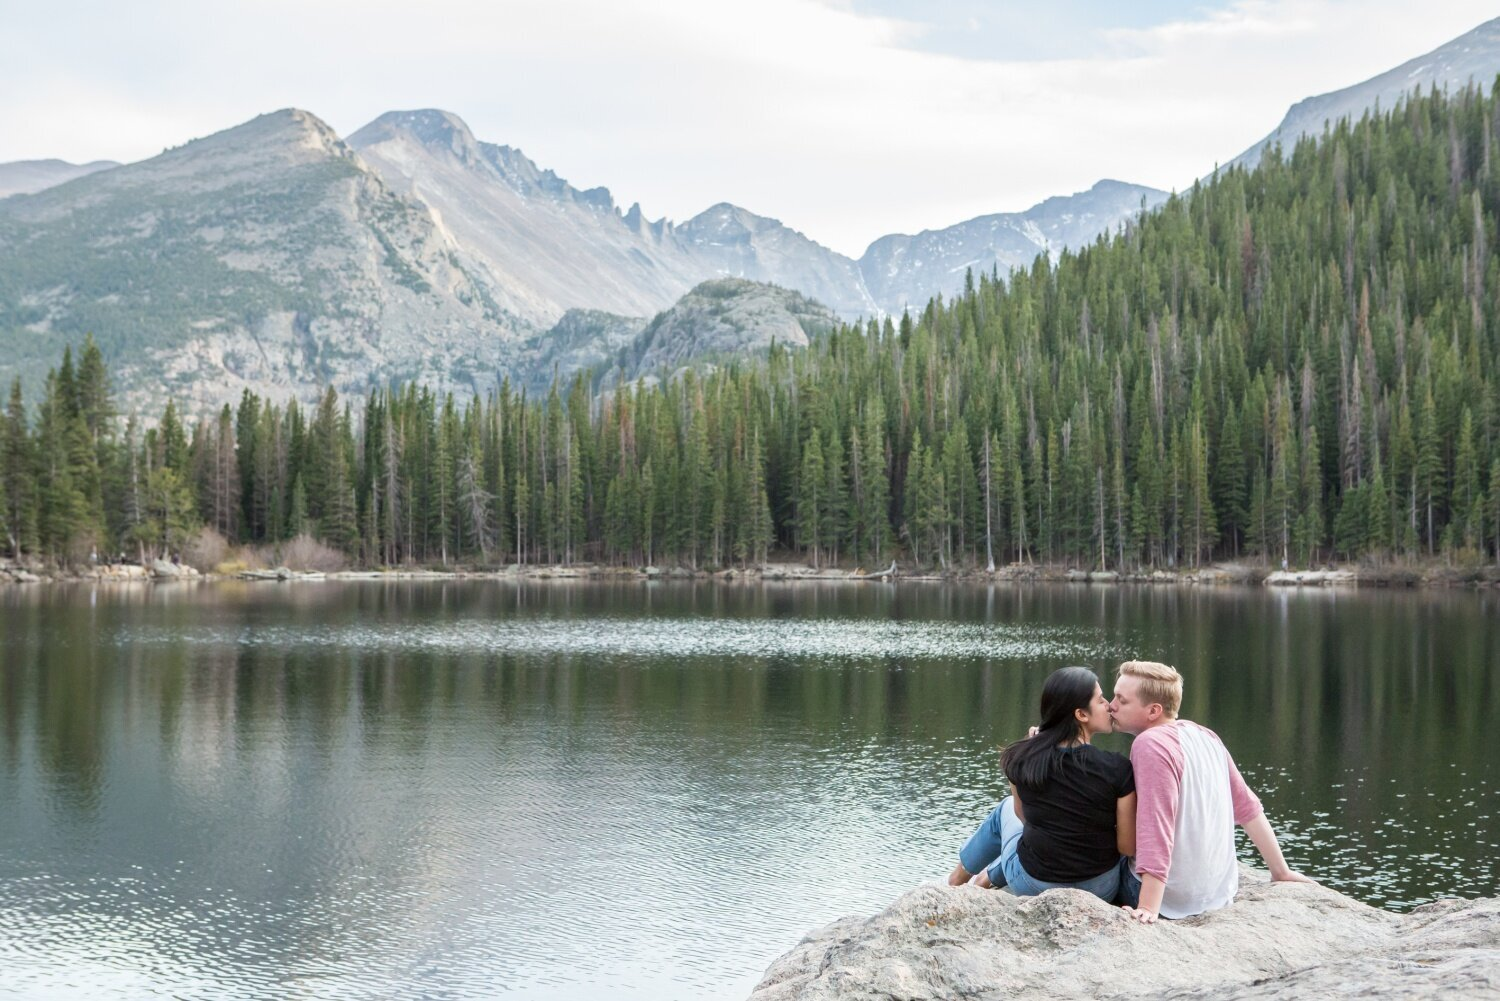 Engagement photos at Bear Lake in Rocky Mountain National Park